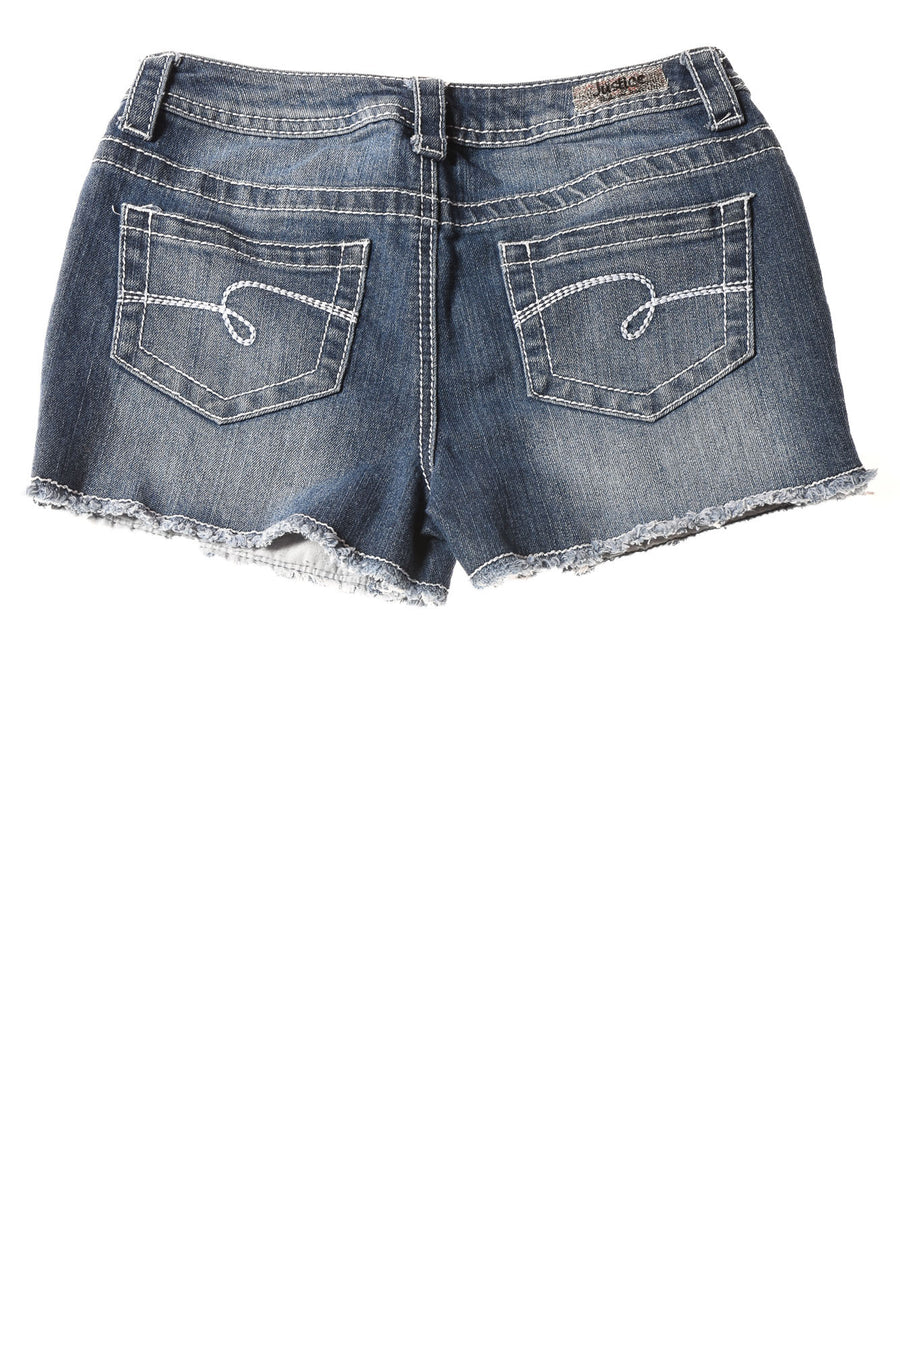 USED Justice Girl's Shorts 12 Blue